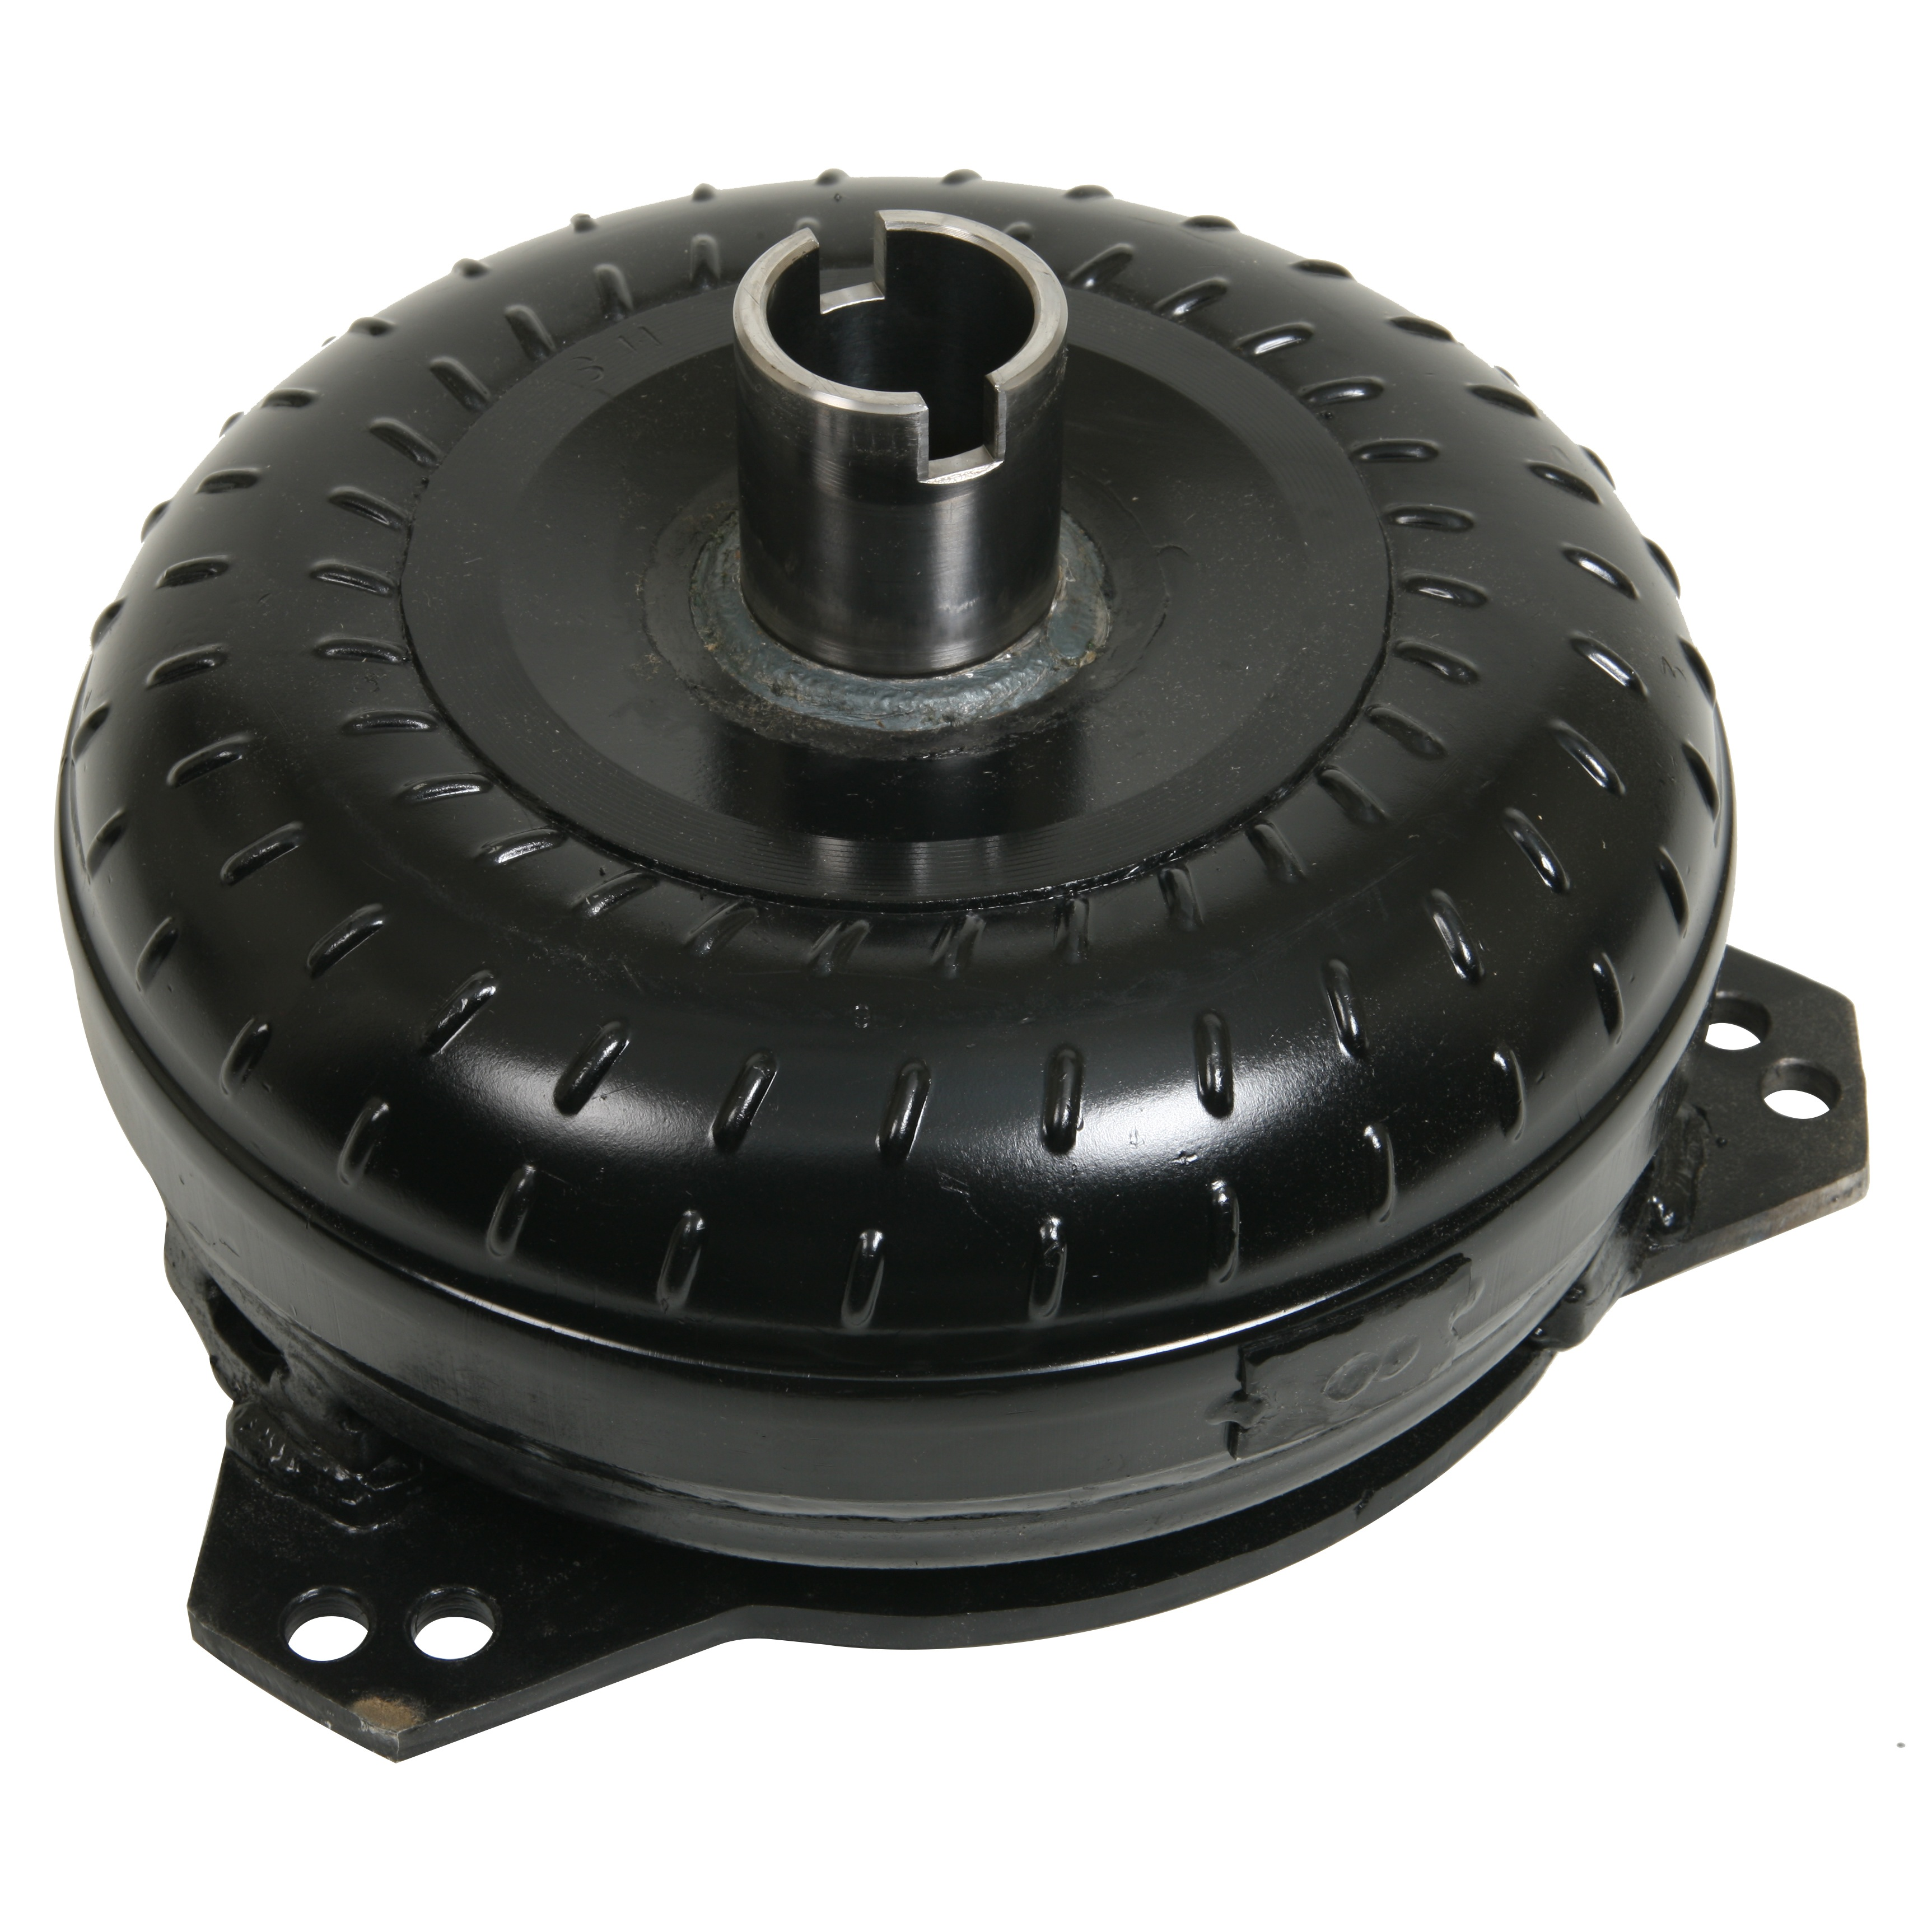 New Performance Parts From Auto Meter  Comp Cams  And